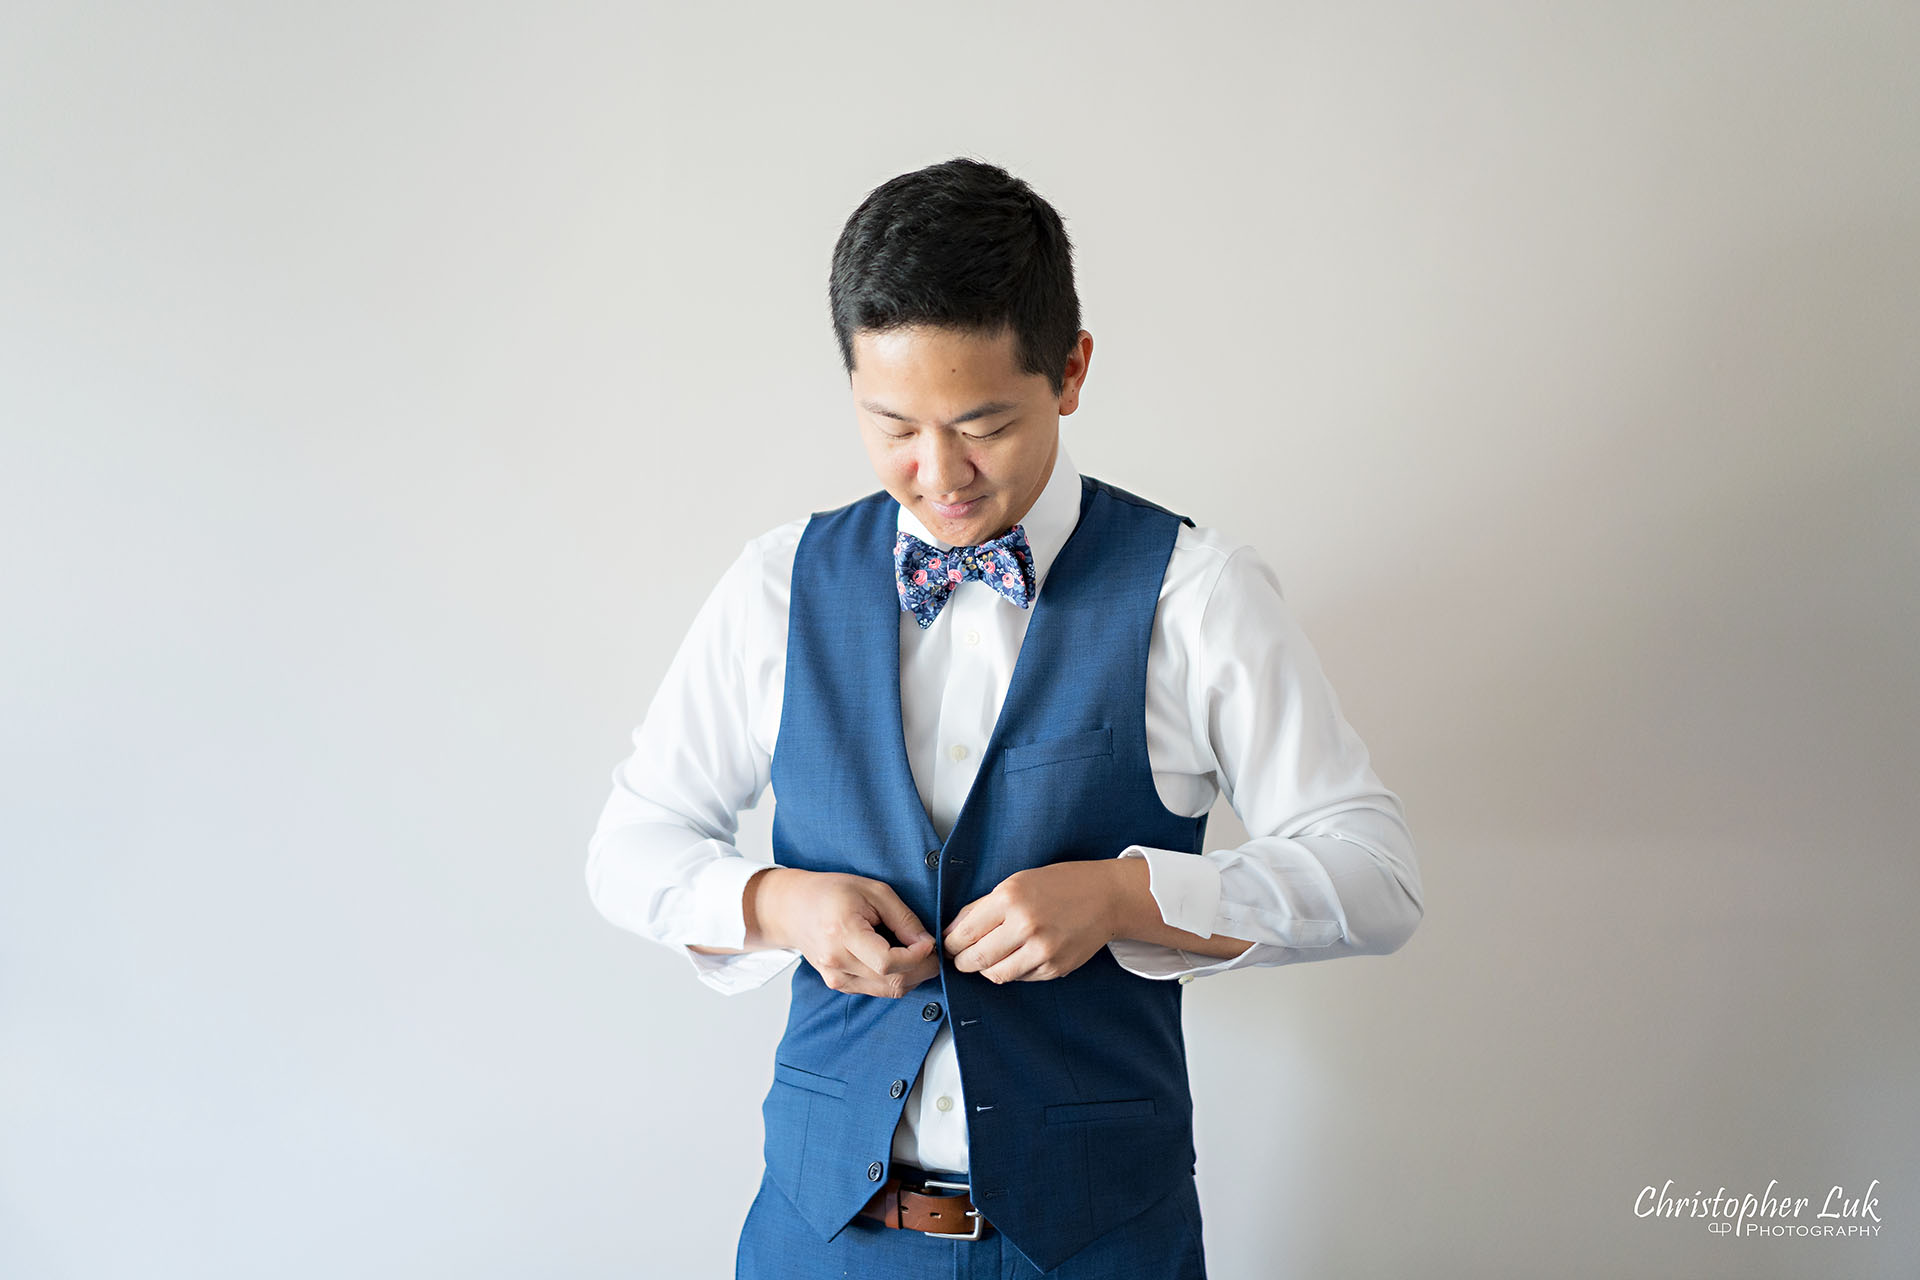 Christopher Luk Toronto Wedding Photographer Bridle Trail Baptist Church Unionville Main Street Crystal Fountain Event Venue Groom Vest Blue Navy Waistcoat Getting Ready Natural Photojournalistic Candid Smile